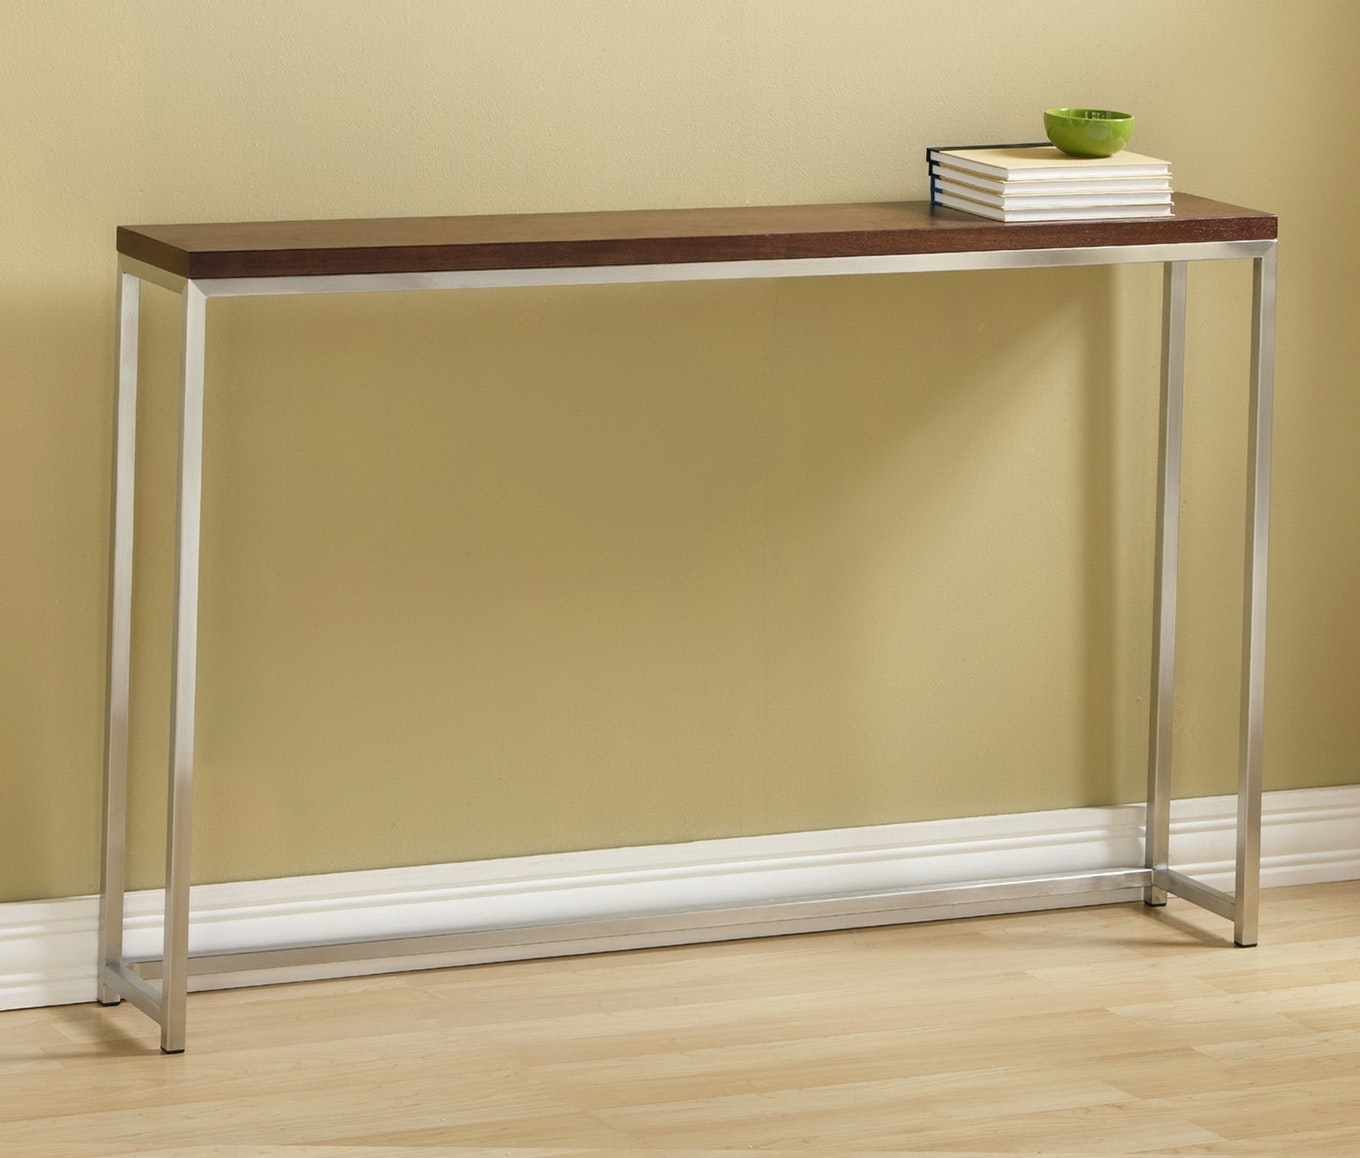 Long Slim Sofa Table   Tehranmix Decoration Intended For Slim Sofa Tables (Image 11 of 20)